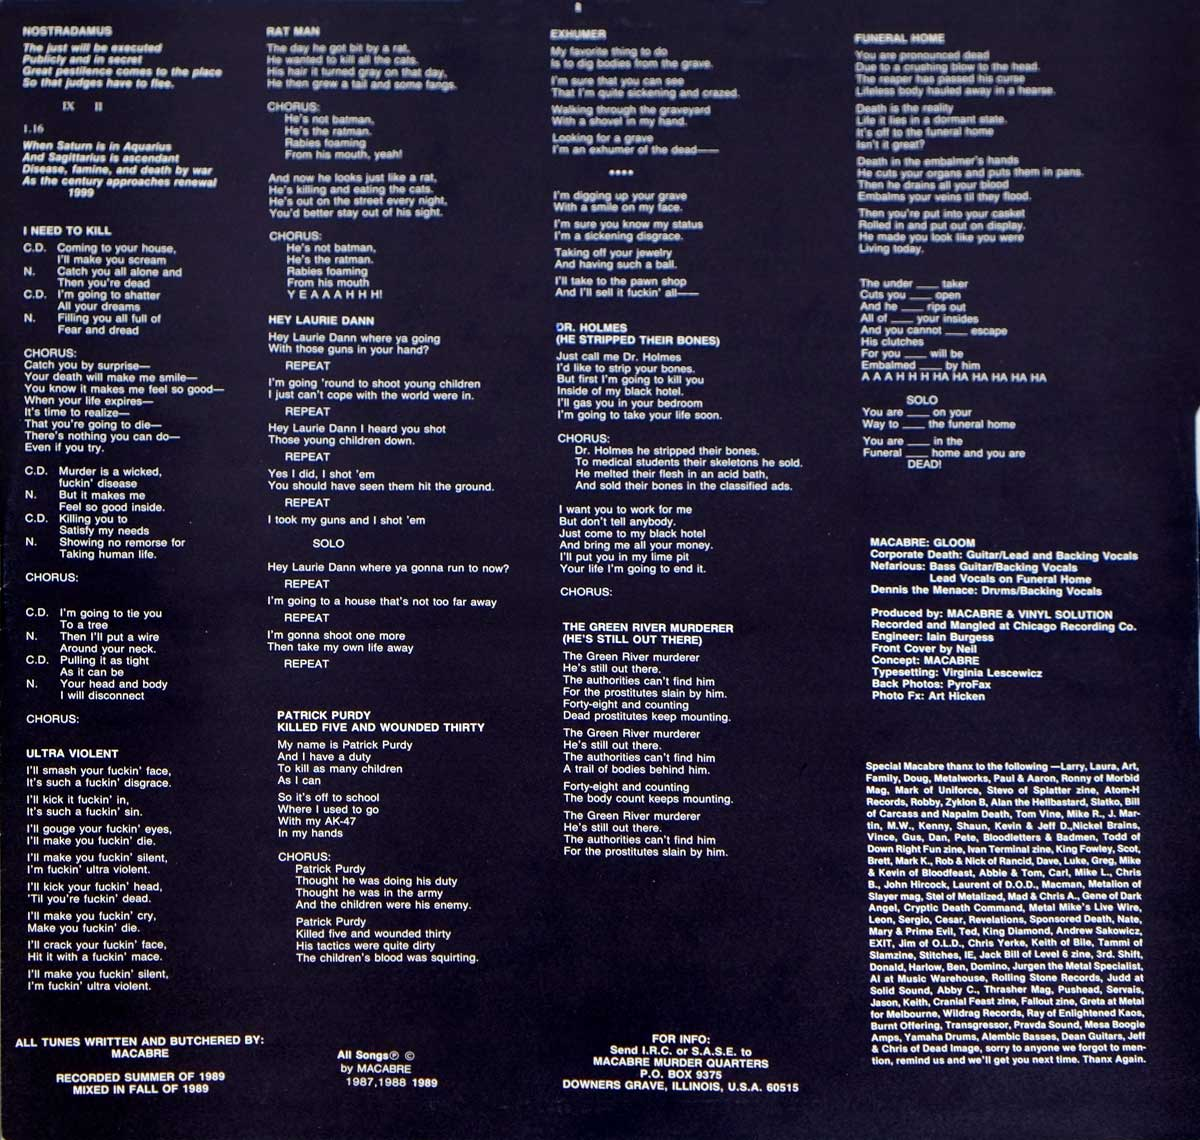 Lyrics printed on the custom inner sleeve of Macabre's Gloom